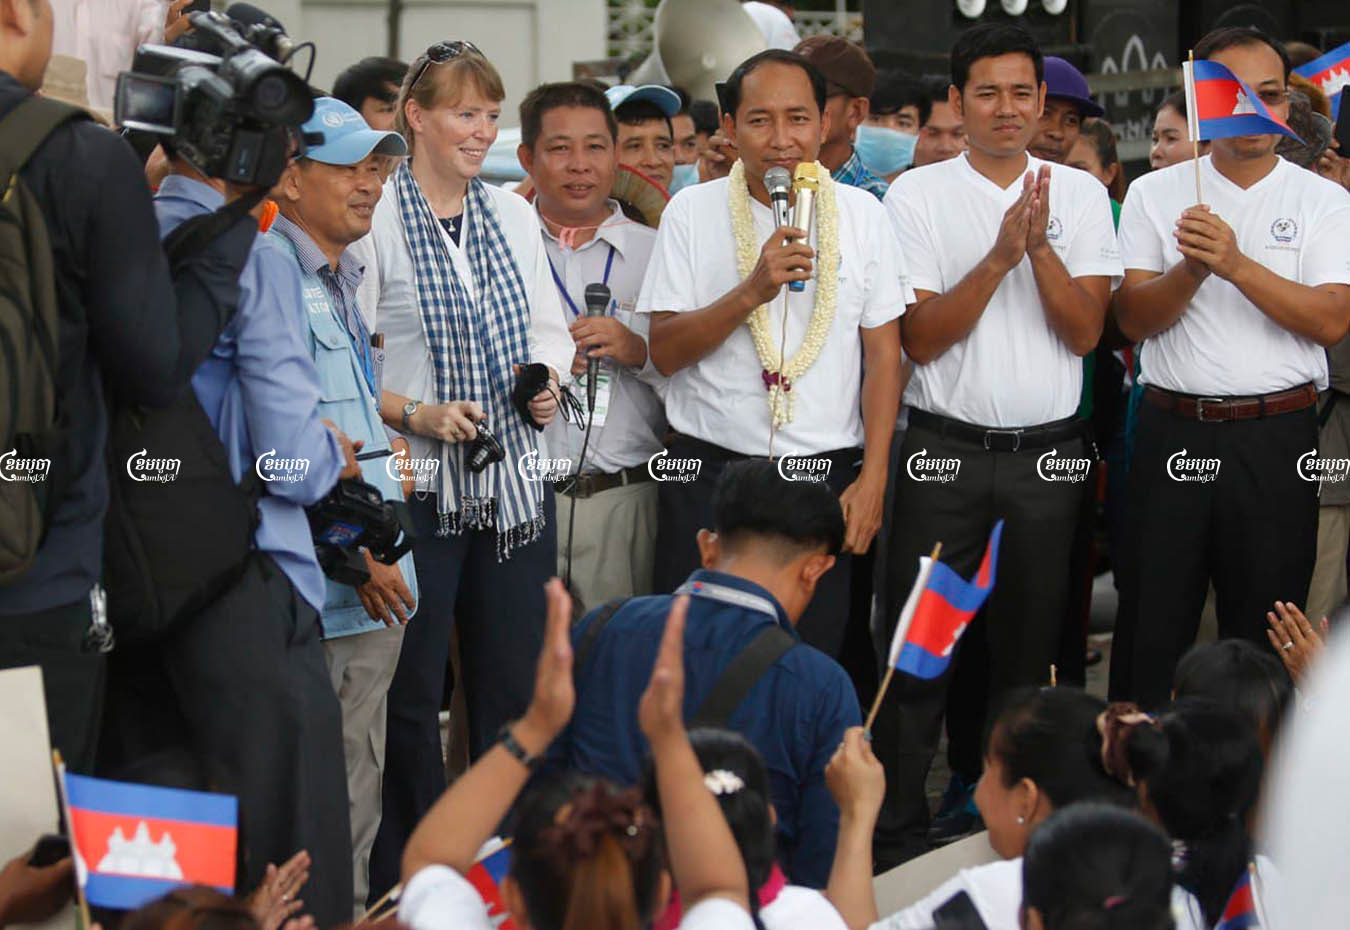 Ath Thorn, president of the Cambodian Labor Confederation speaks to workers during the Labor Day celebration in Phnom Penh, Picture taken on May 1, 2019. CamboJA/ Pring Samrang